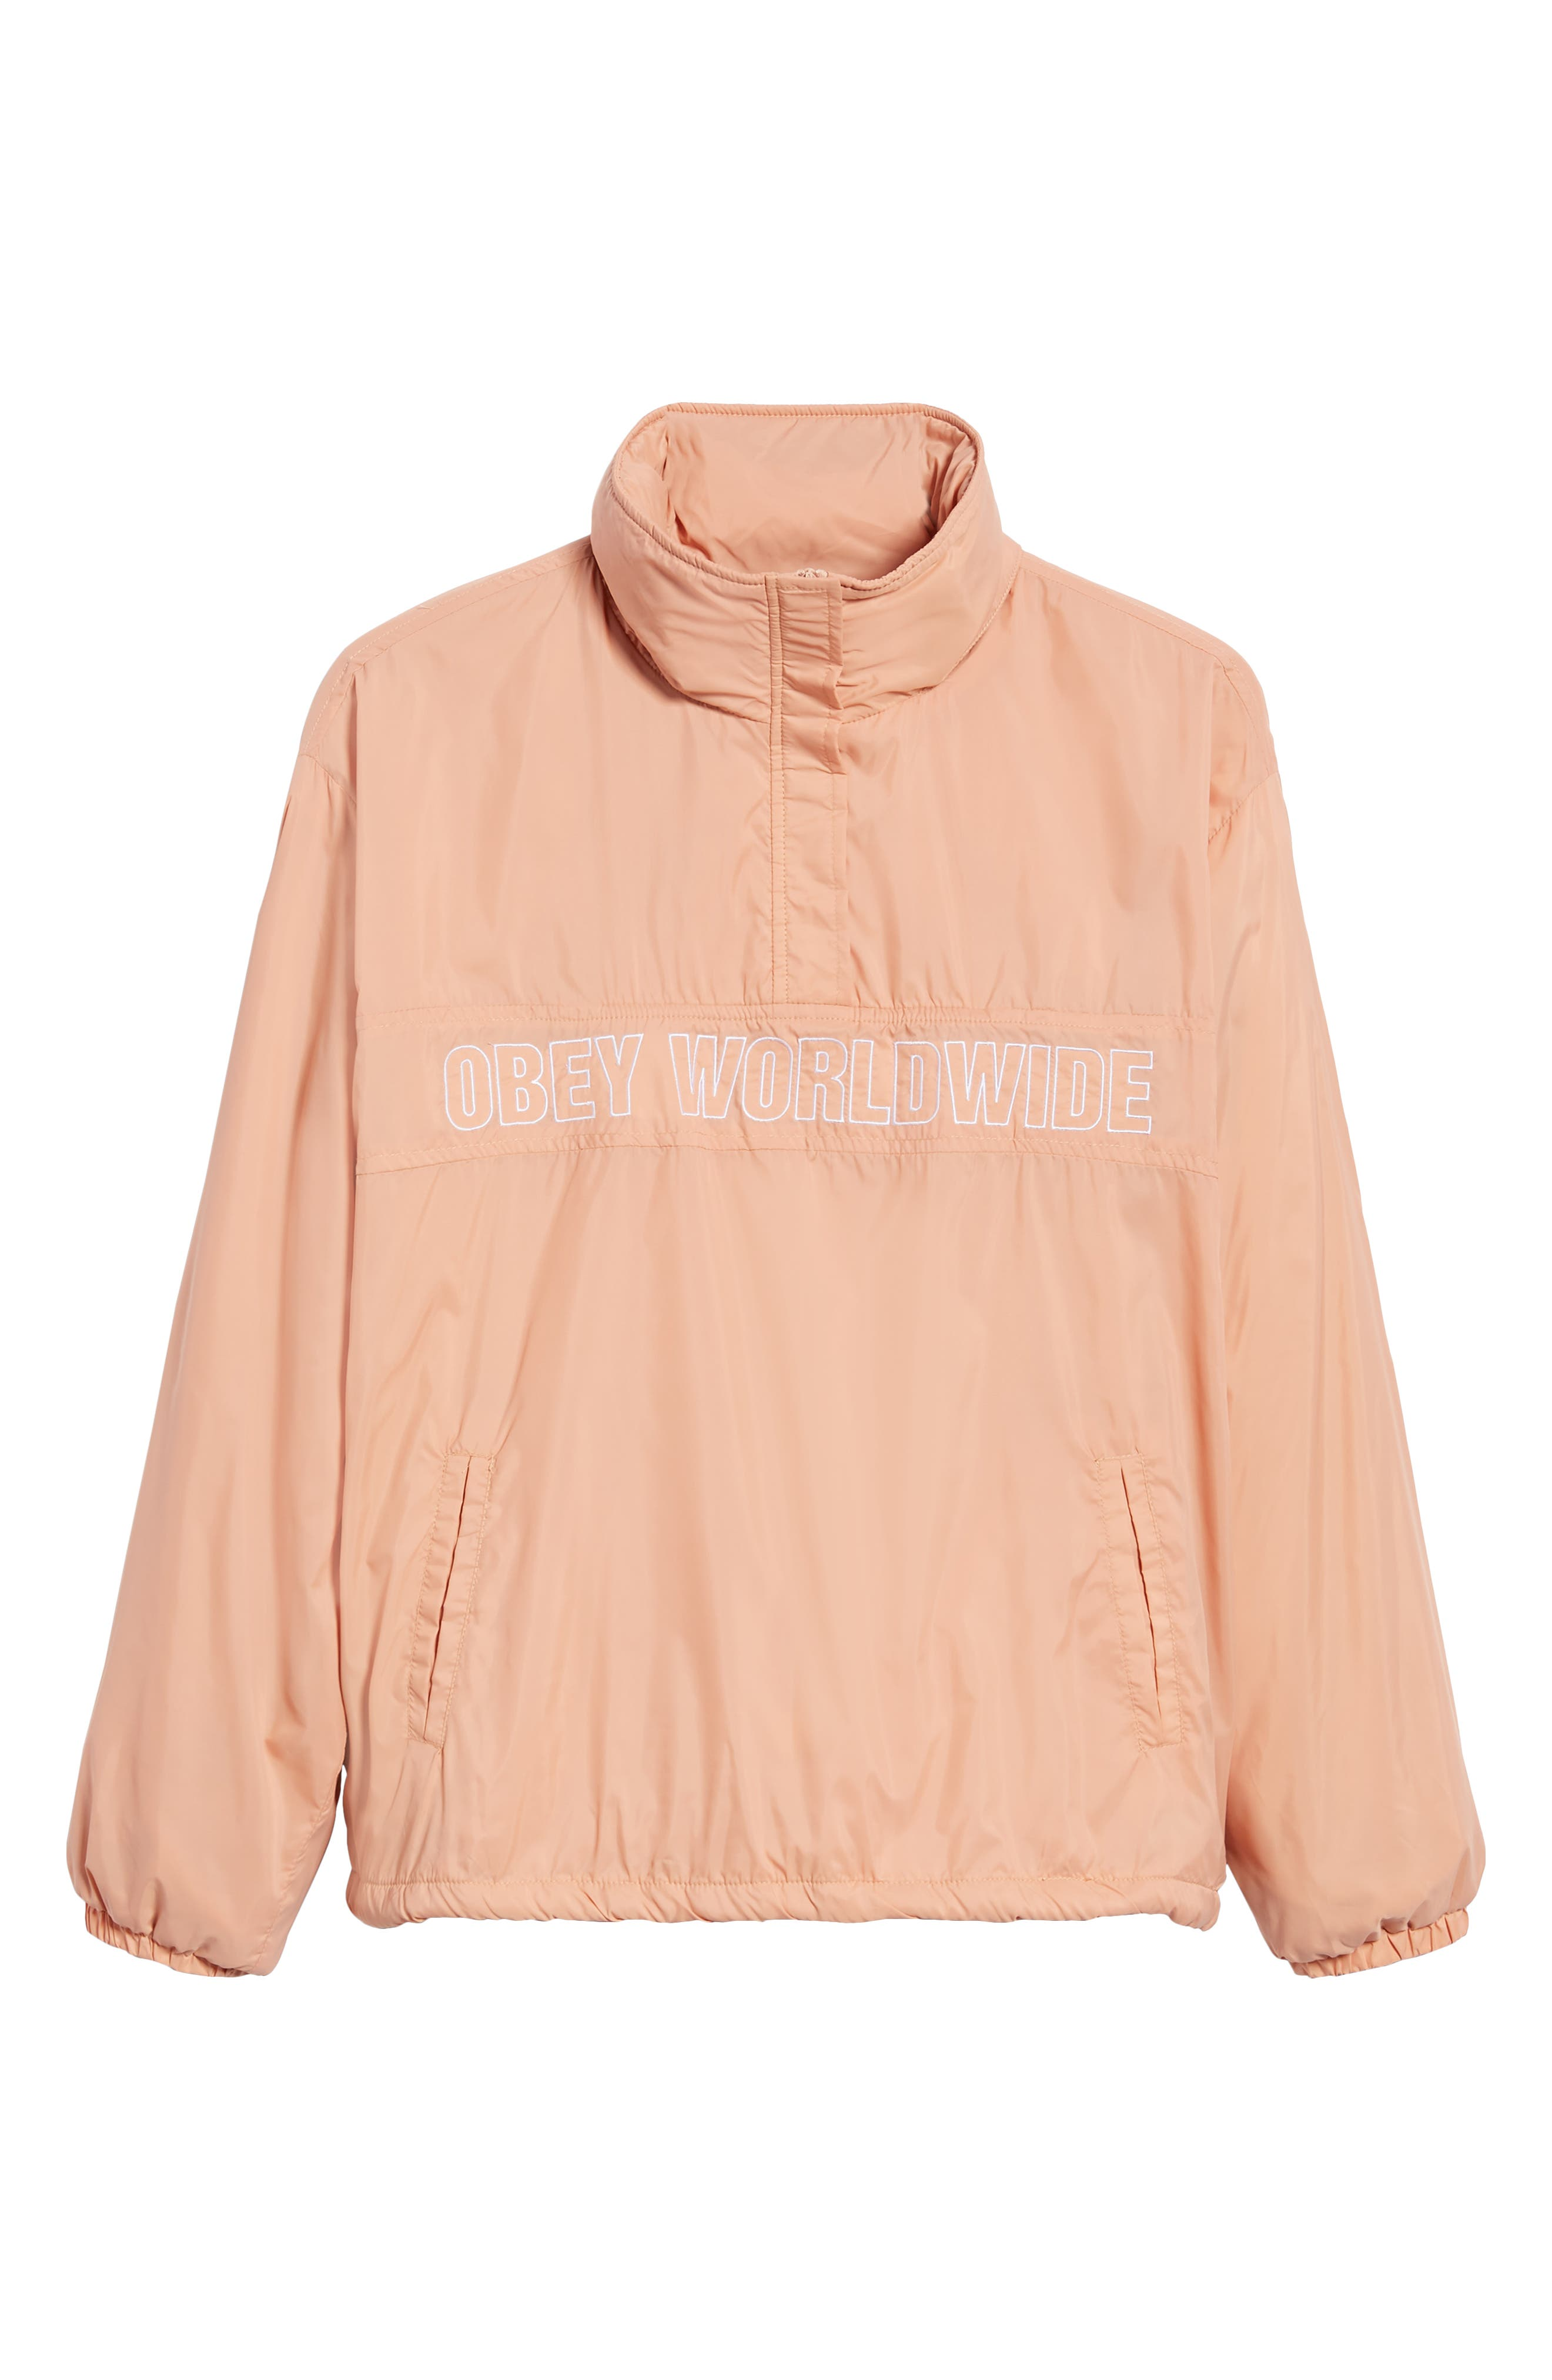 OBEY,                             Bunker Anorak,                             Alternate thumbnail 6, color,                             950